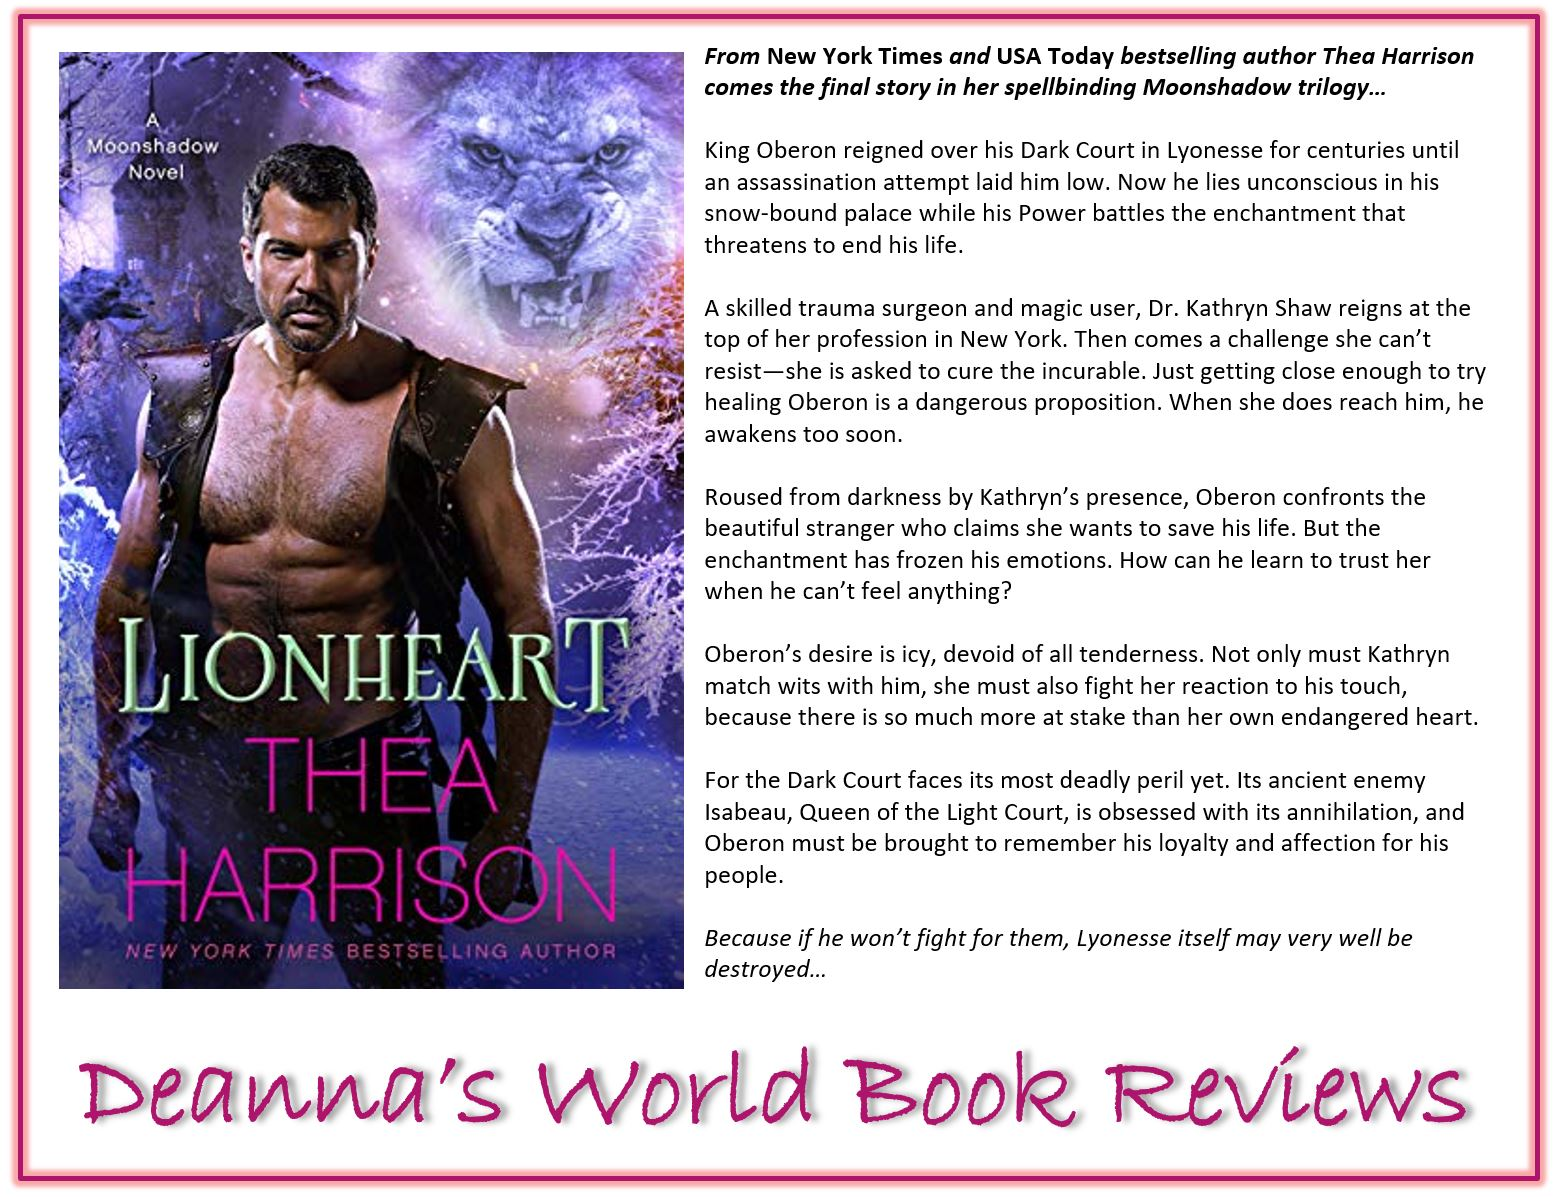 Lionheart by Thea Harrison blurb